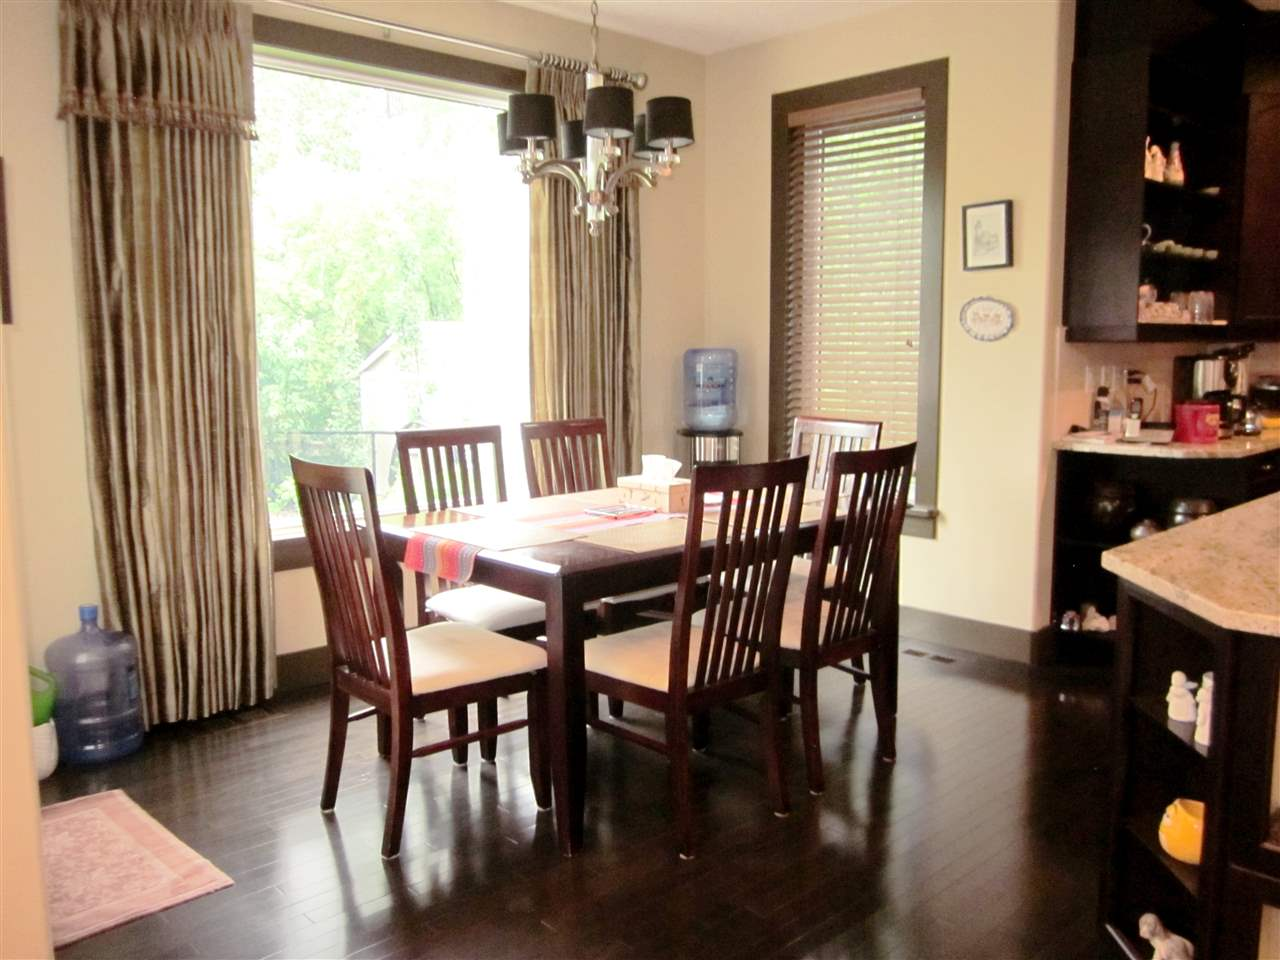 Breakfast nook has large window with view of the backyard, and garden door access to the deck.